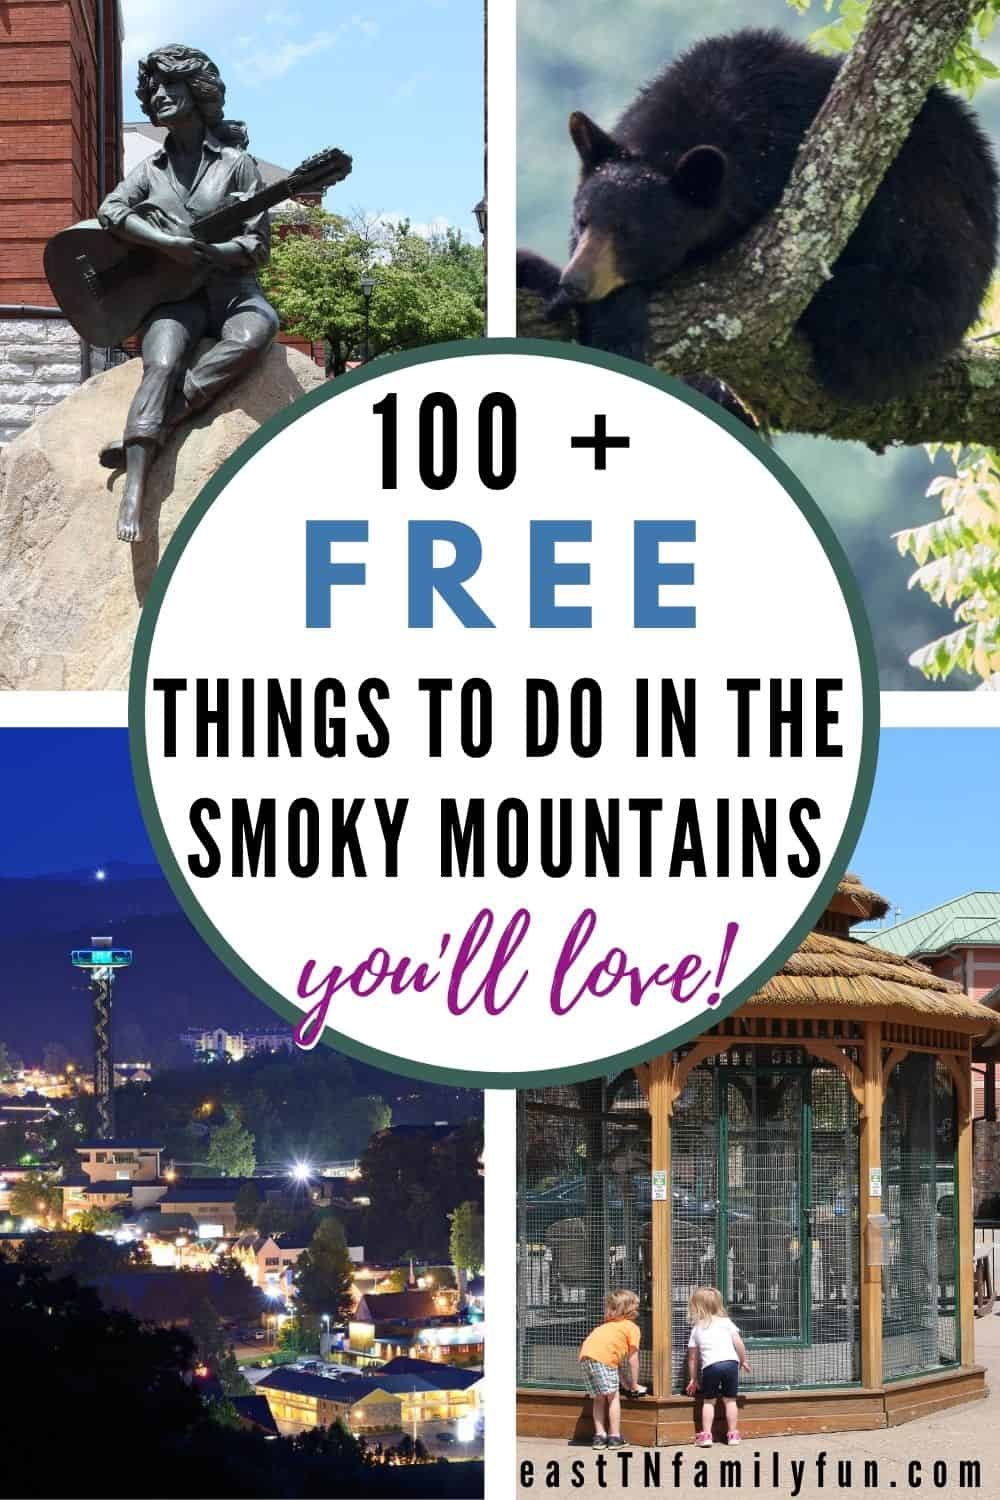 100 + Free Things to Do in the Smoky Mountains